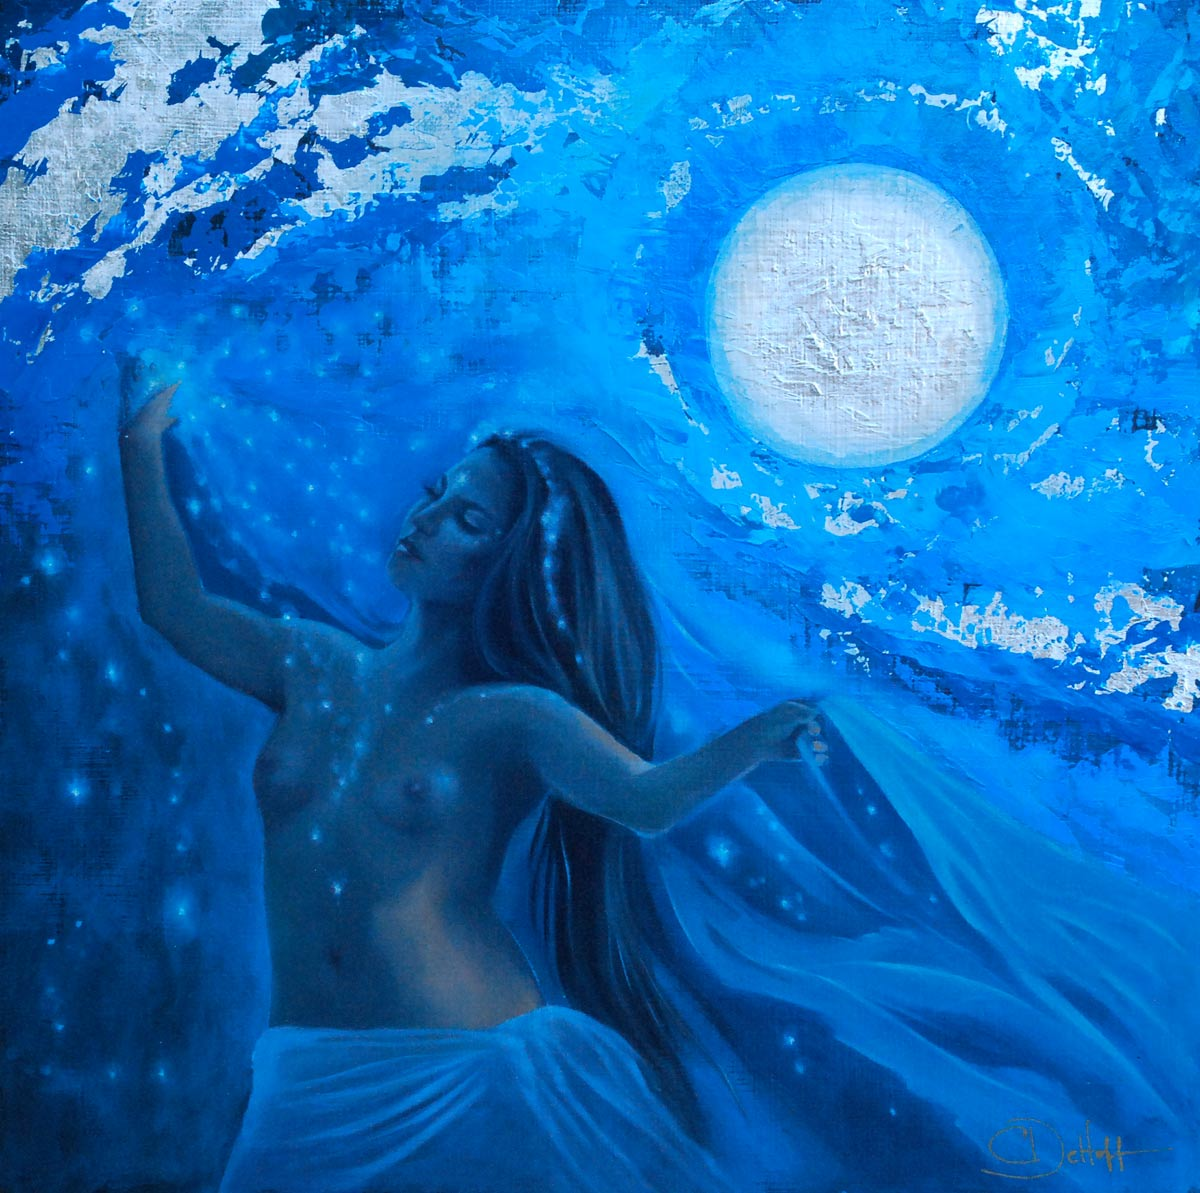 christina-dehoff-blue-moon-dance